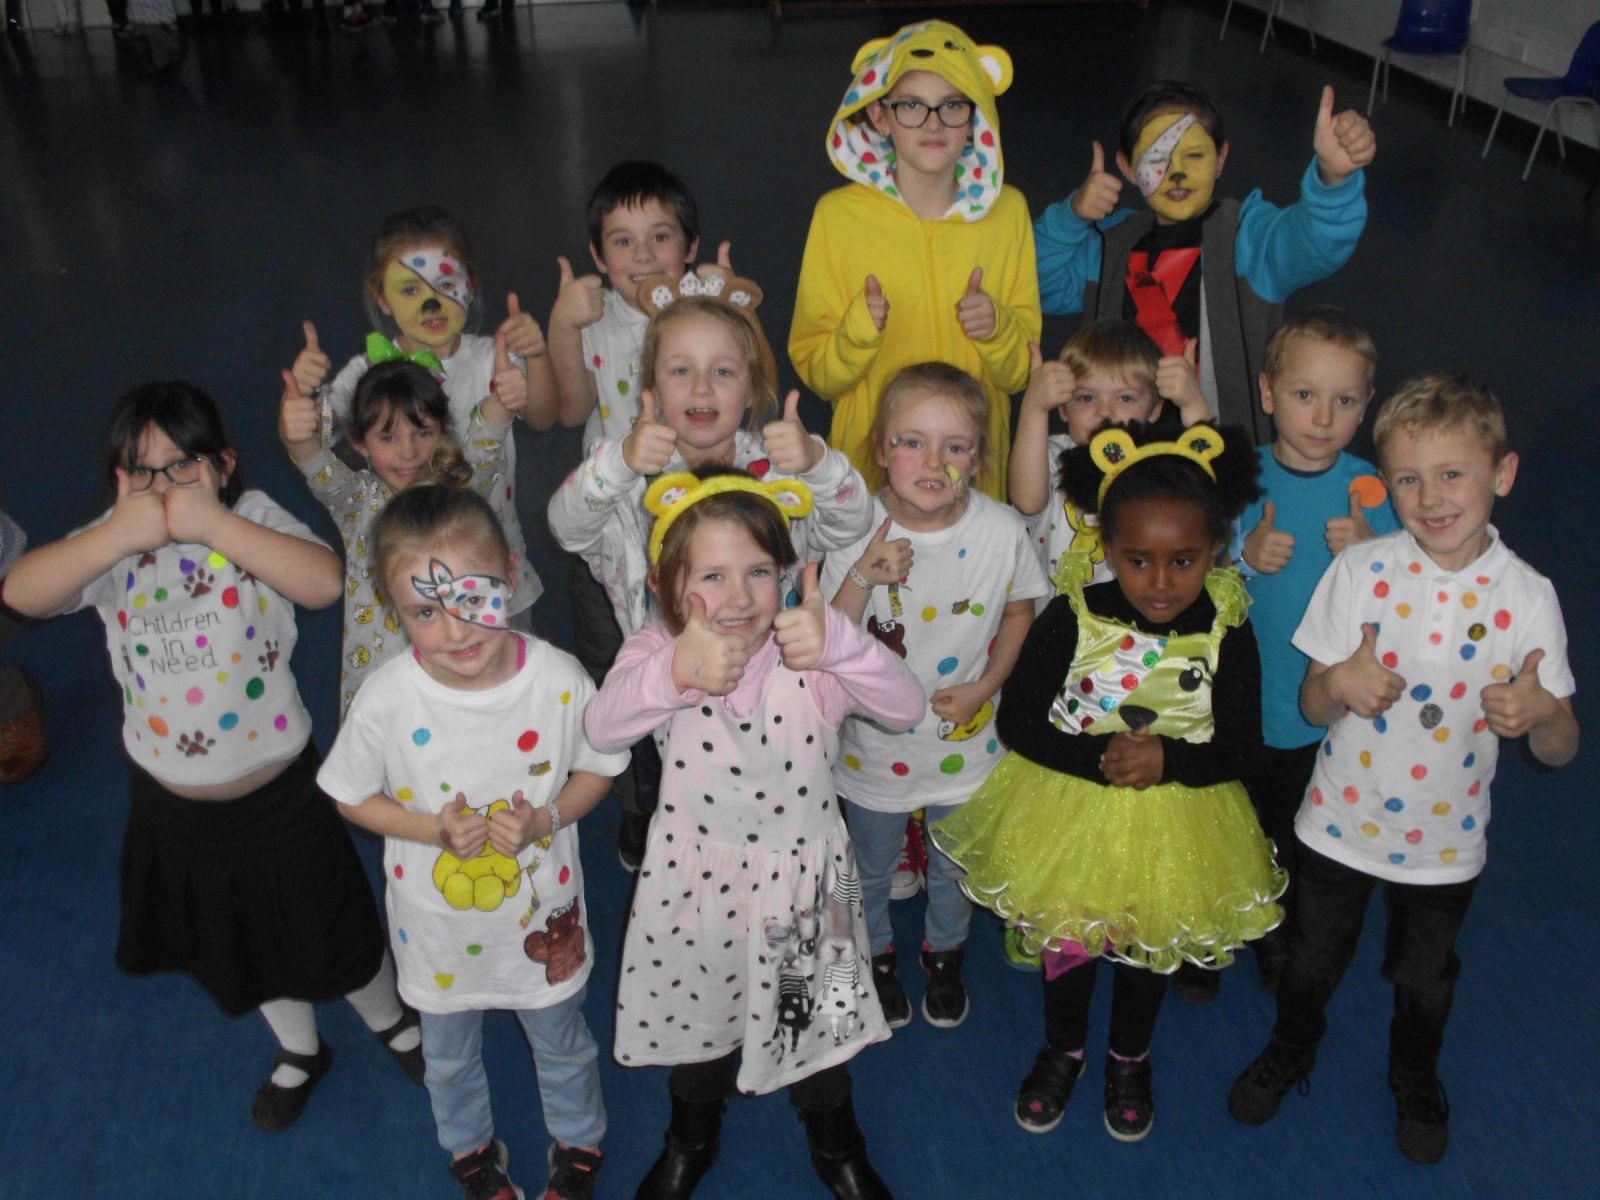 Heathcoat Children in Need